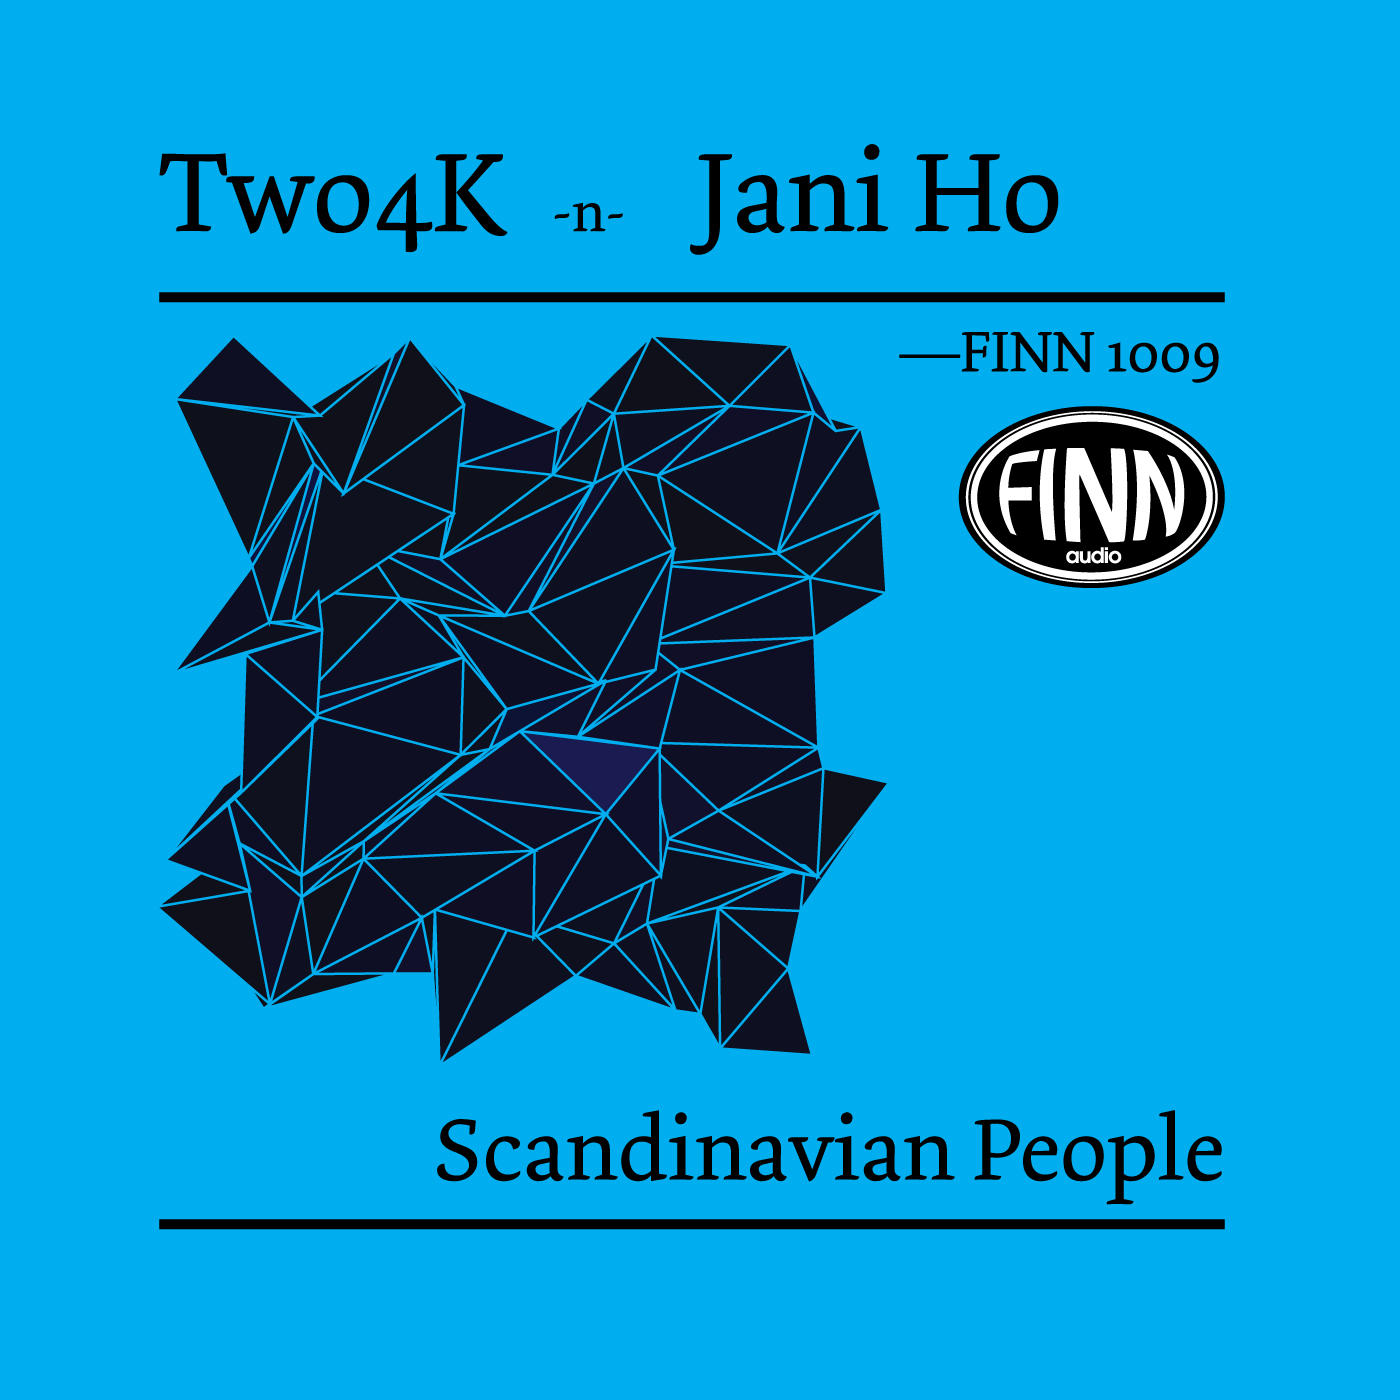 Scandinavian People - Two4K, Jani Ho